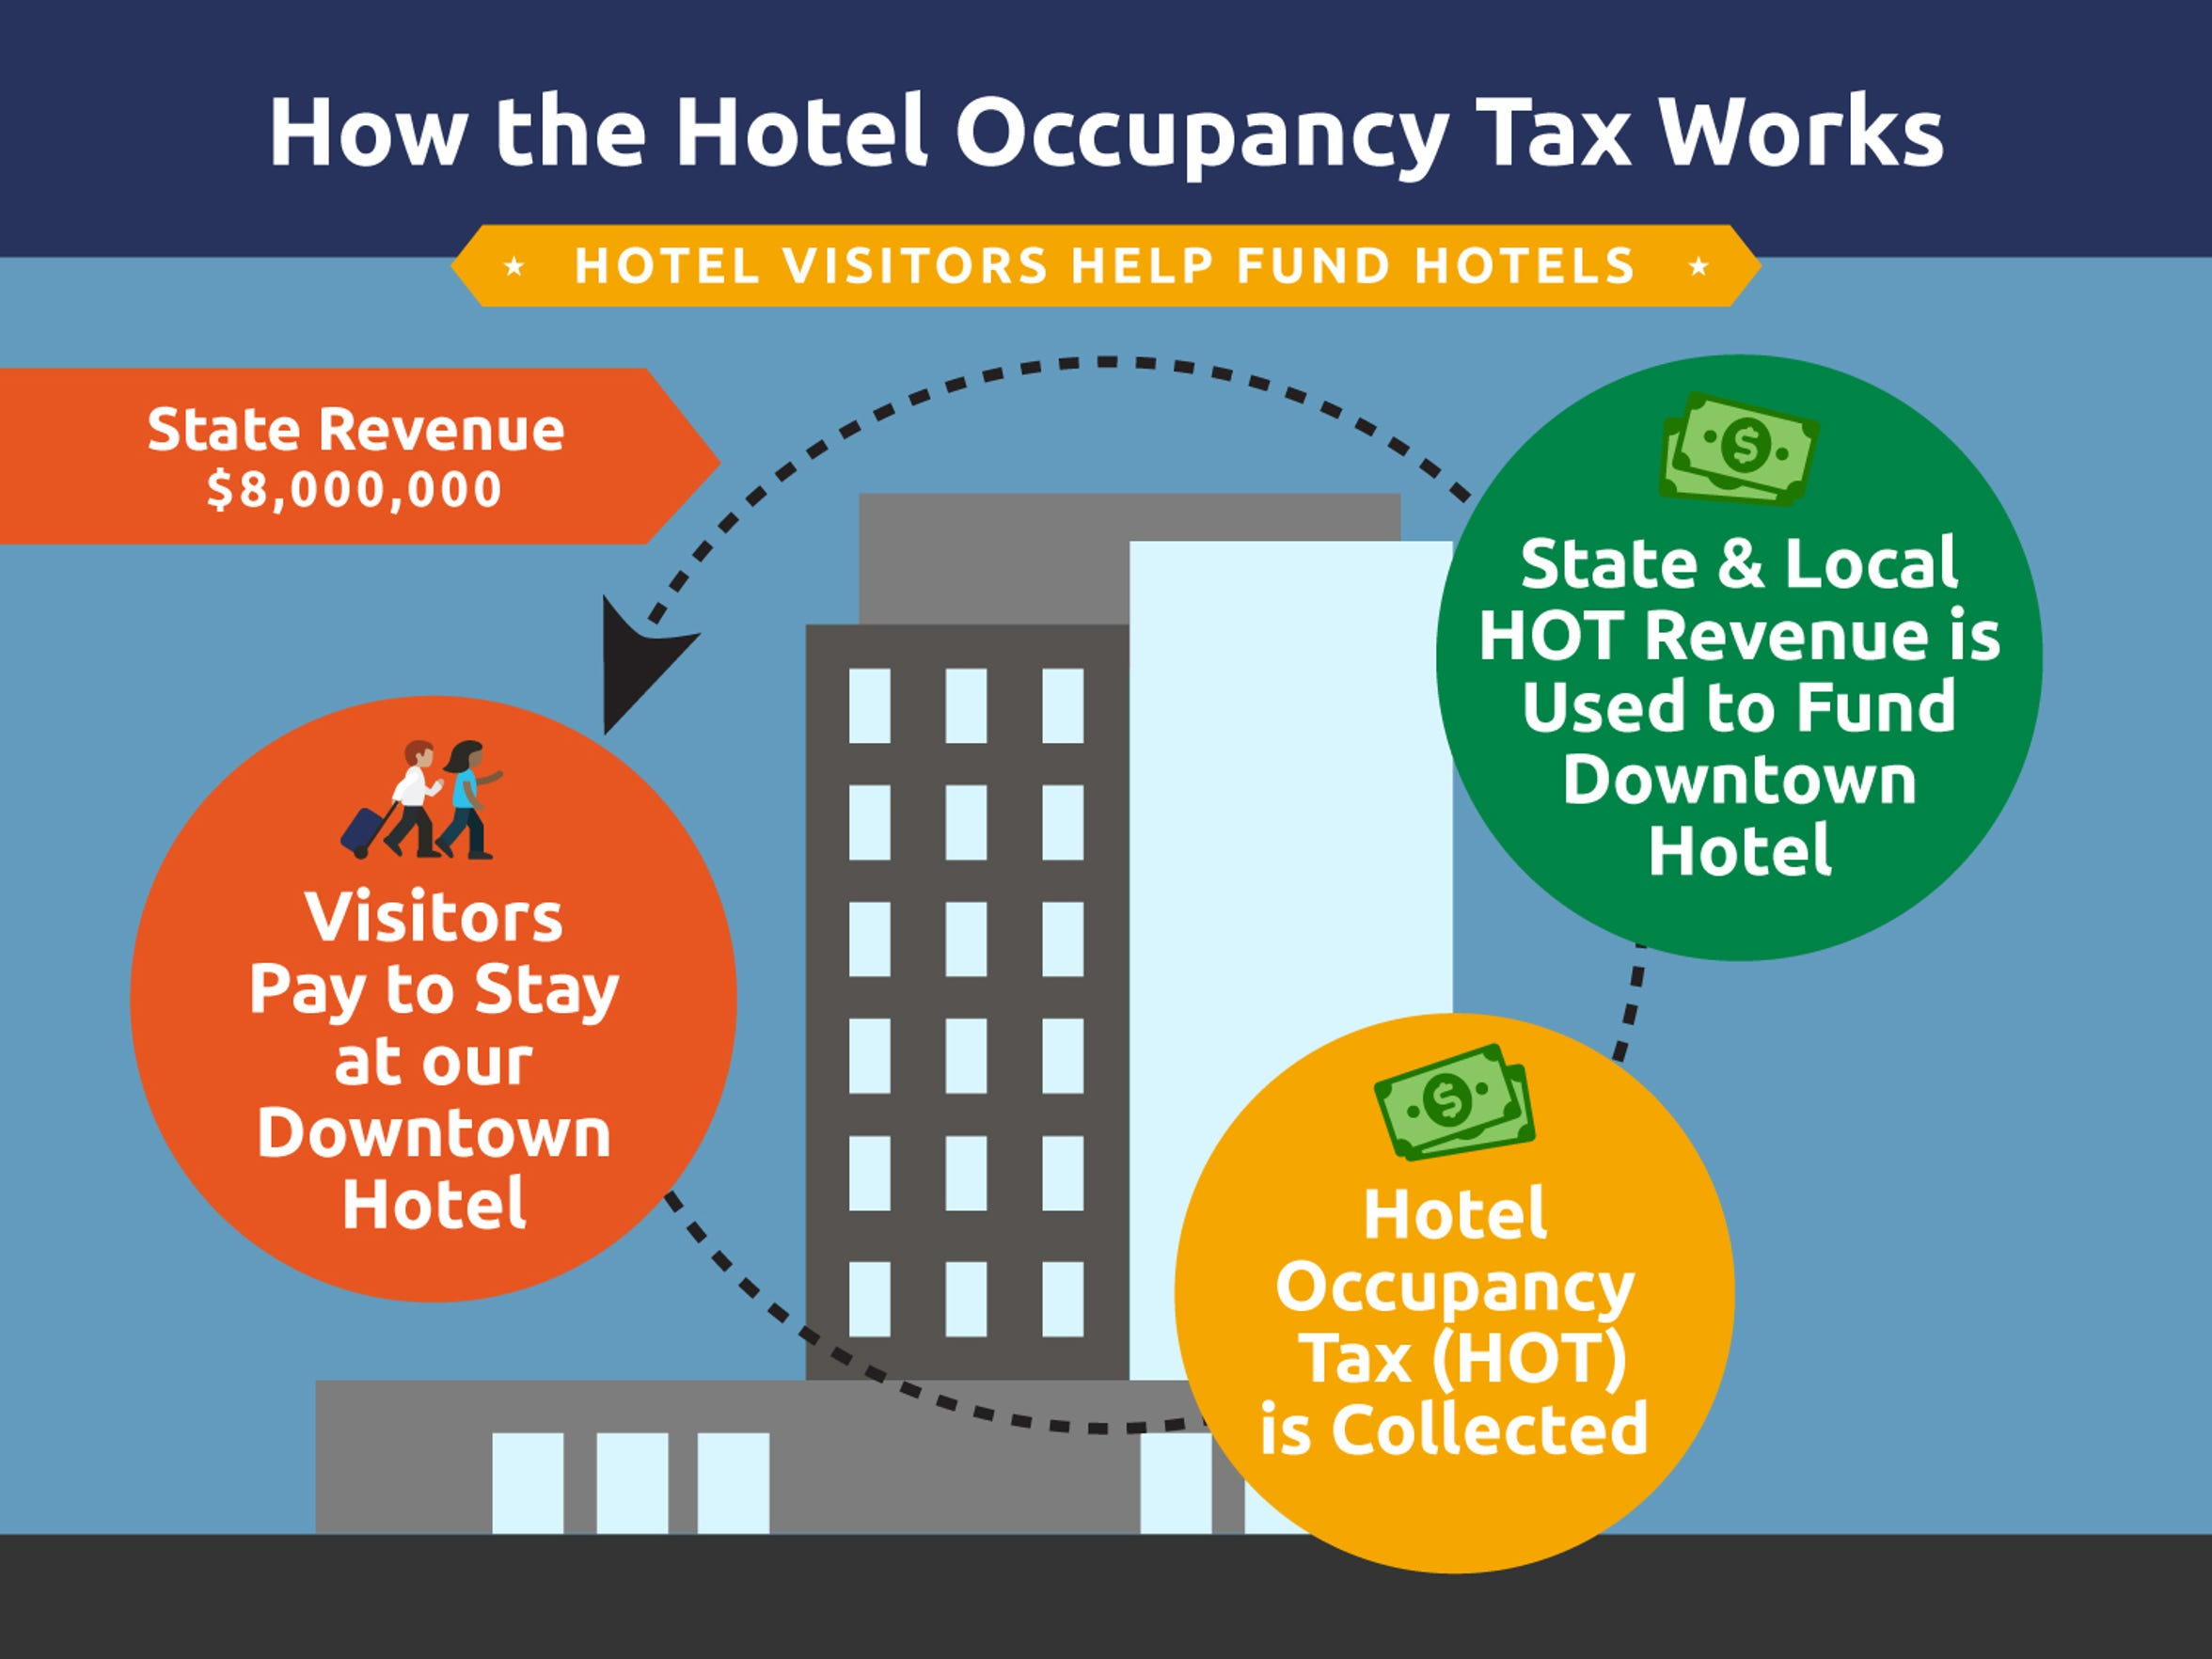 Funding model for Hotel Occupancy Tax (HOT) and how it will help fund the future downtown hotel project.